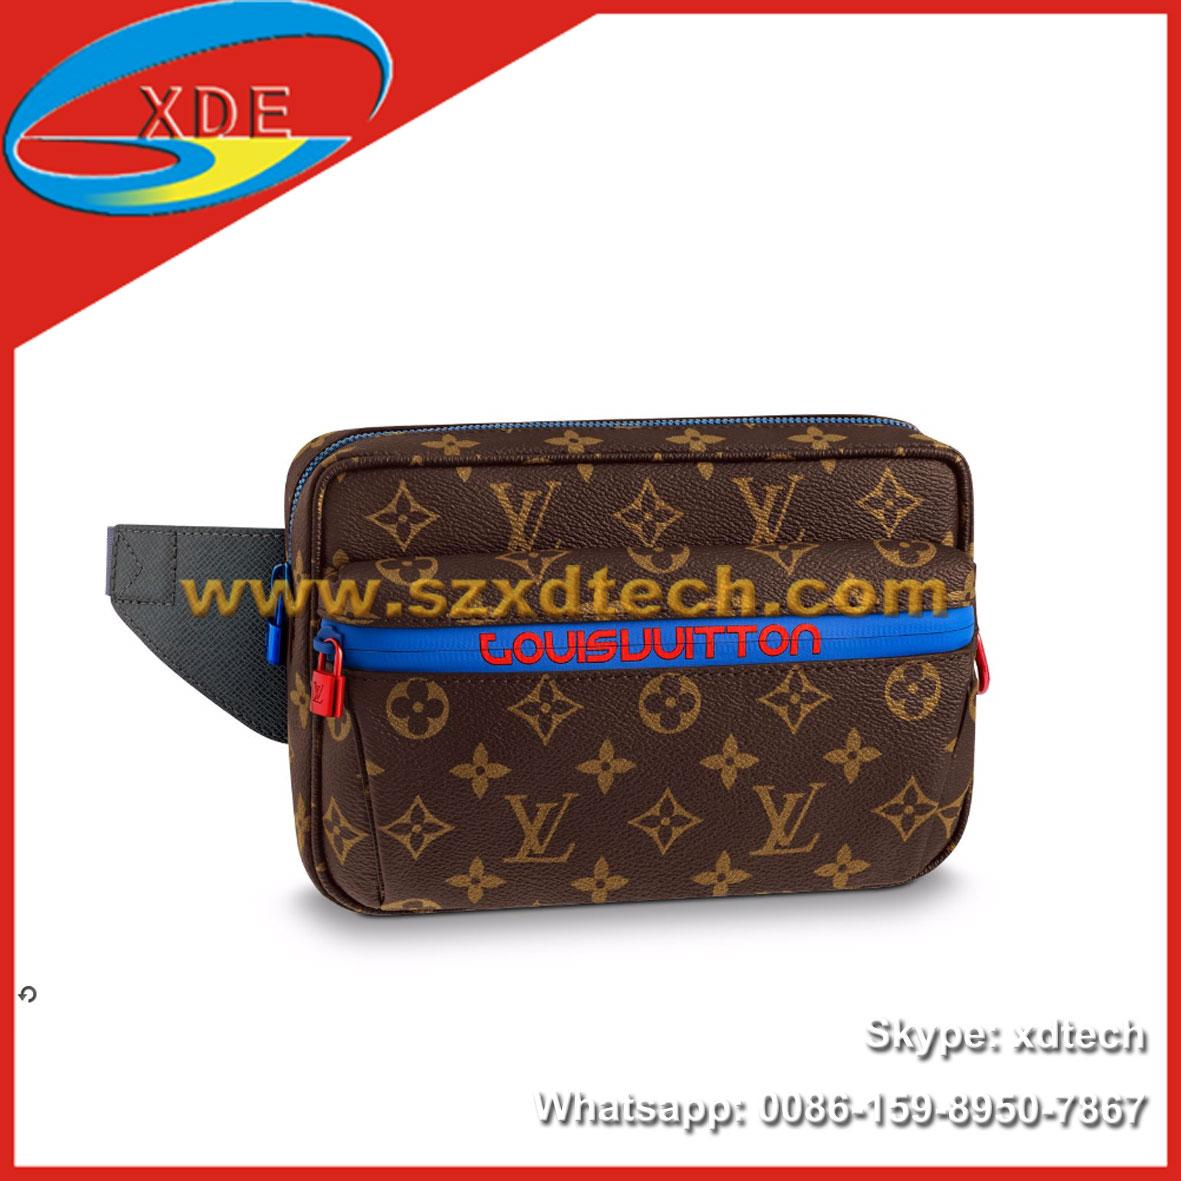 fd1924c4f4fe Louis Vuitton BUMBAG M43828 LV Messenger Bag LV Men s Bag LV Cross Bag